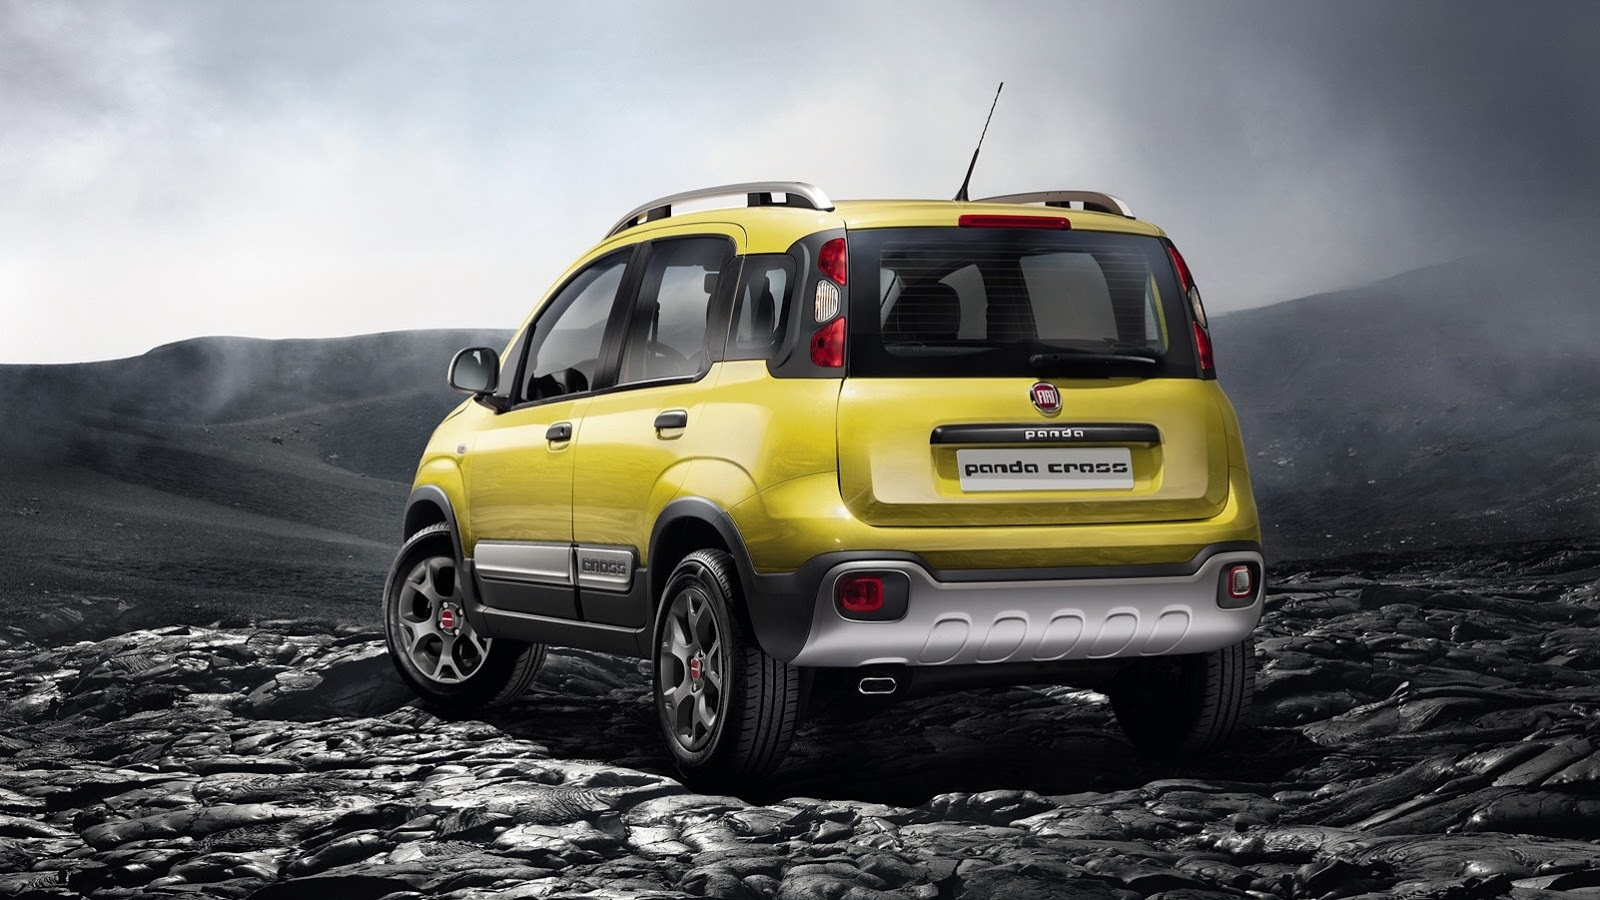 fiat panda cross 2014 wallpapers 1600x900 411586. Black Bedroom Furniture Sets. Home Design Ideas